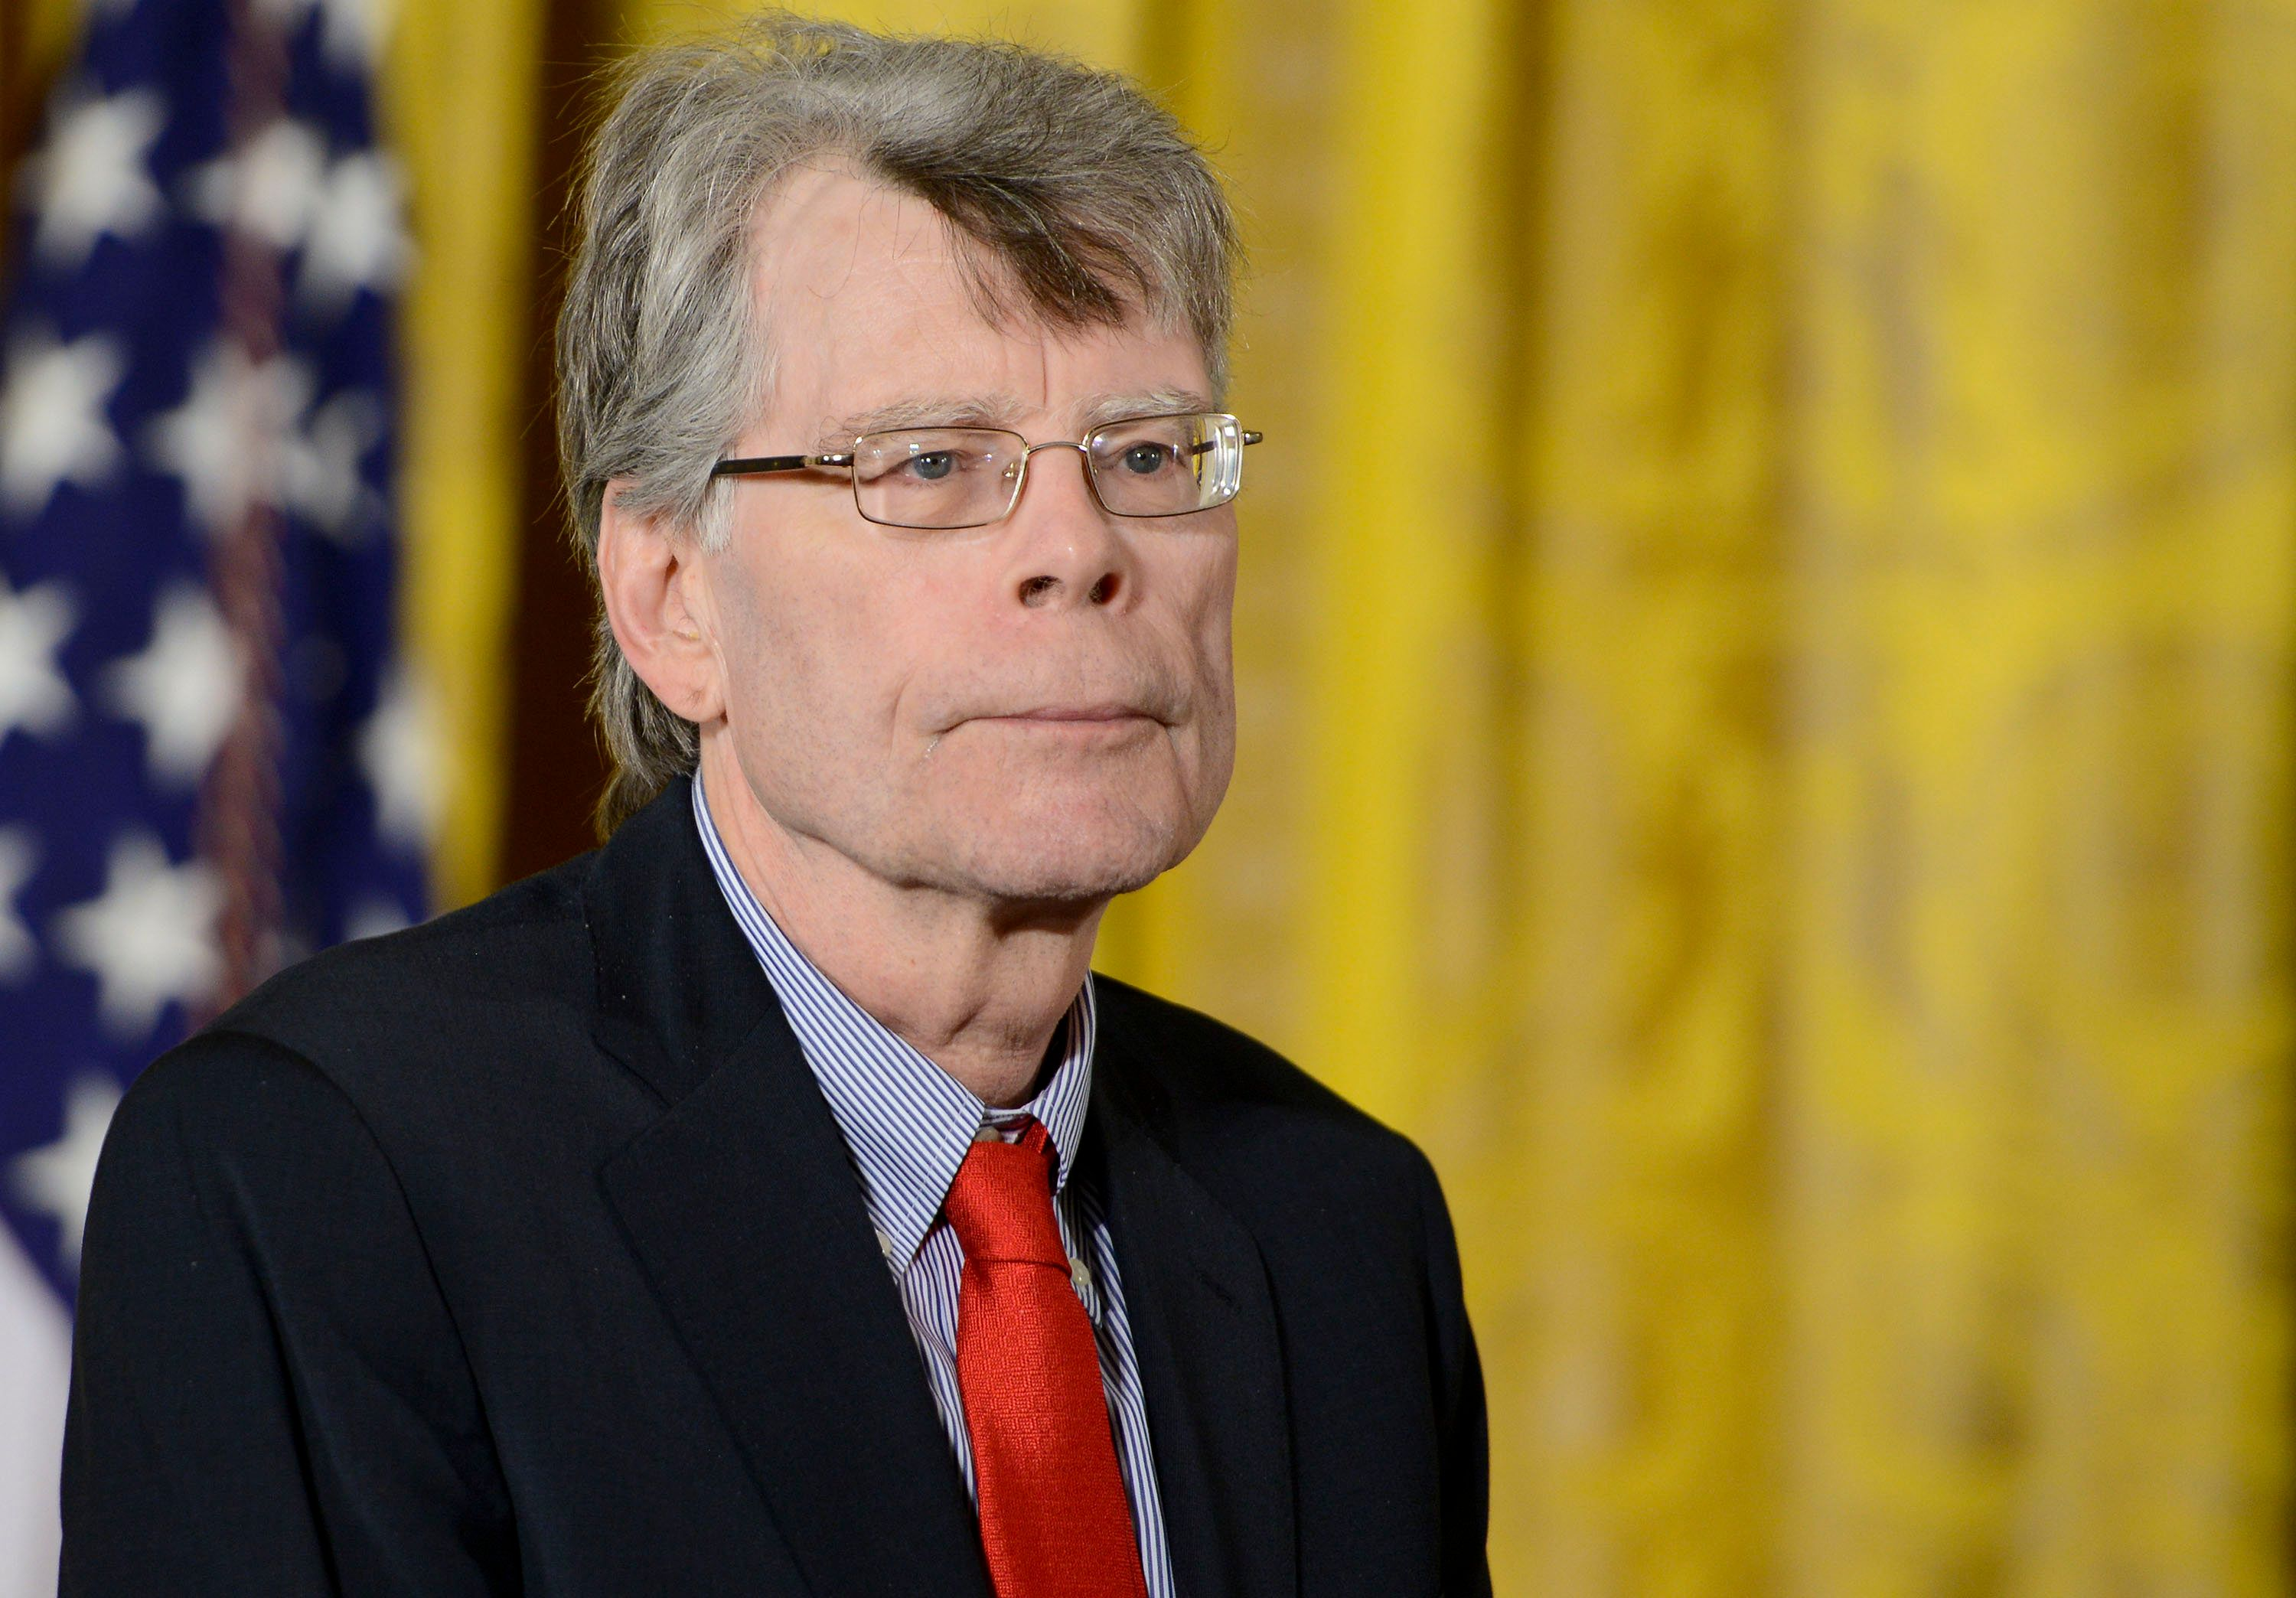 WASHINGTON, DC - SEPTEMBER 10:  President Barack Obama presents author Stephen King with the 2014 National Medal of Arts at The White House on September 10, 2015 in Washington, DC.  (Photo by Leigh Vogel/WireImage)